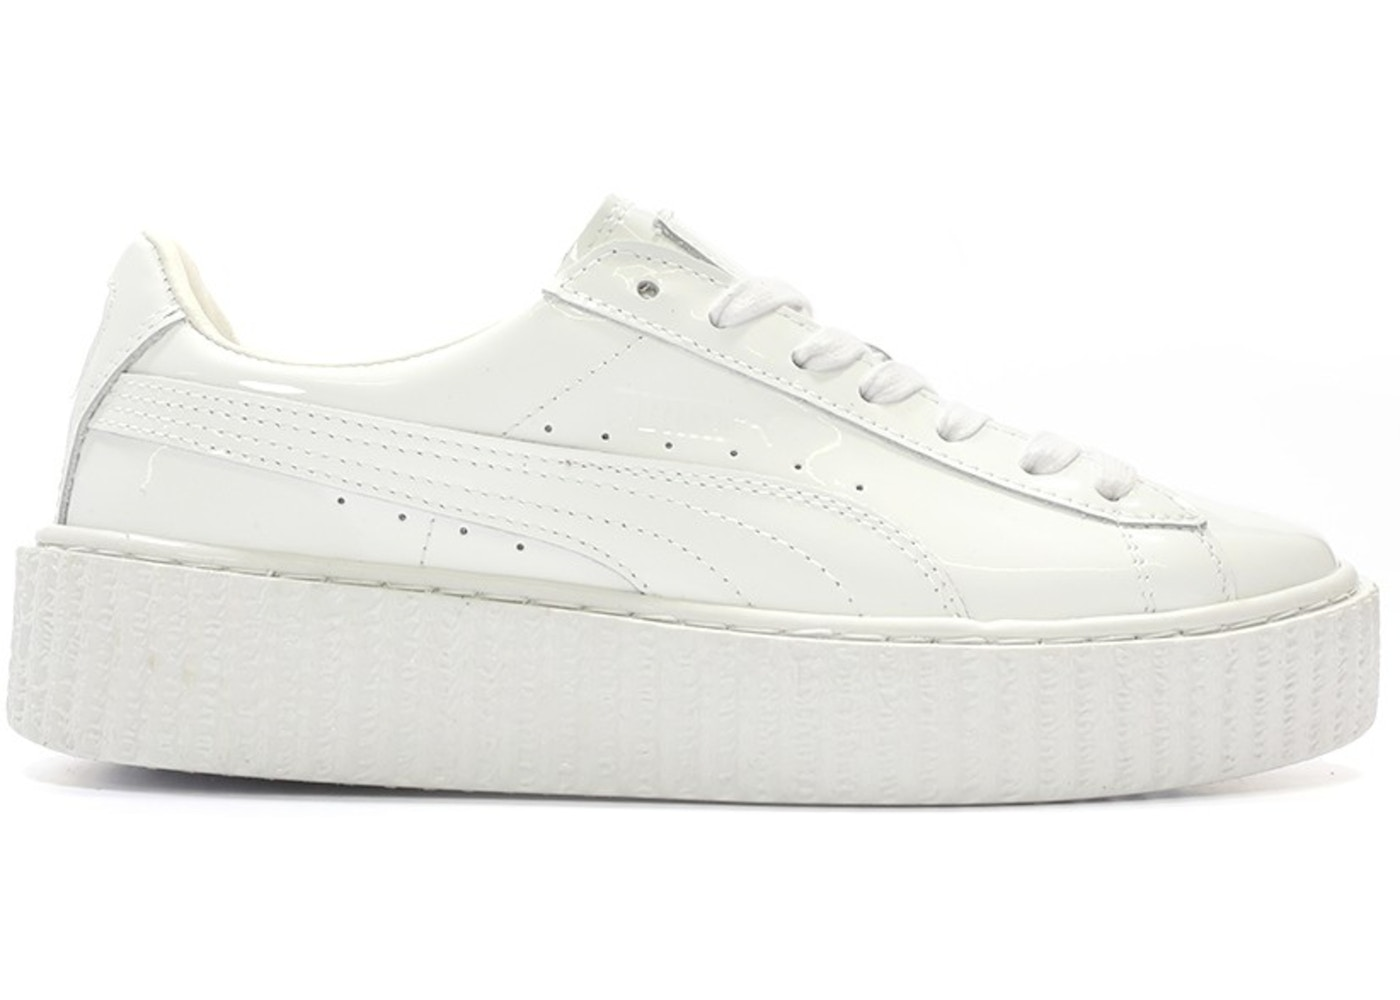 low priced 6485e 7defa Puma Creepers Rihanna Fenty Glossy White (W)